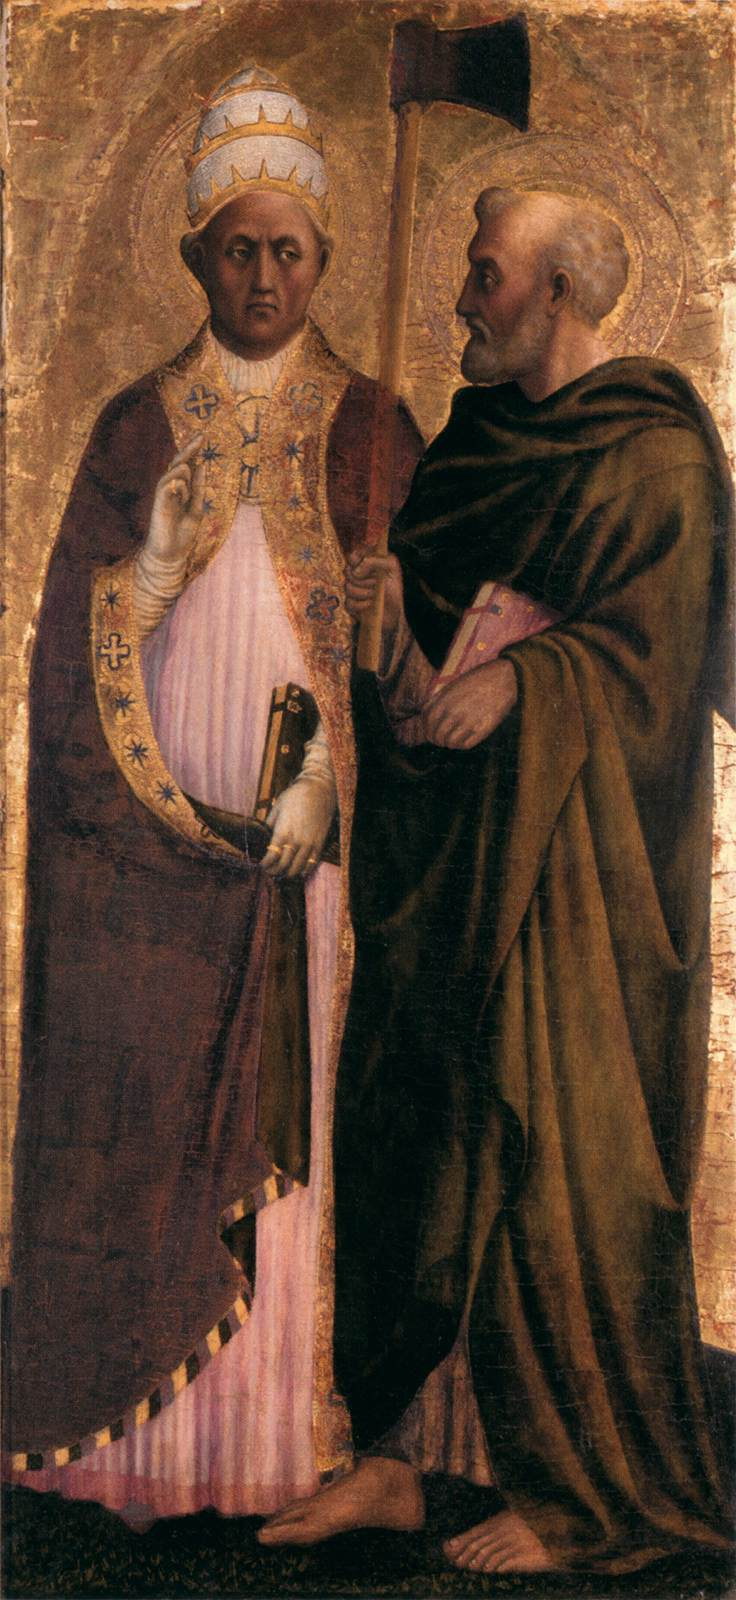 Pope Gregory the Great and St Matthias